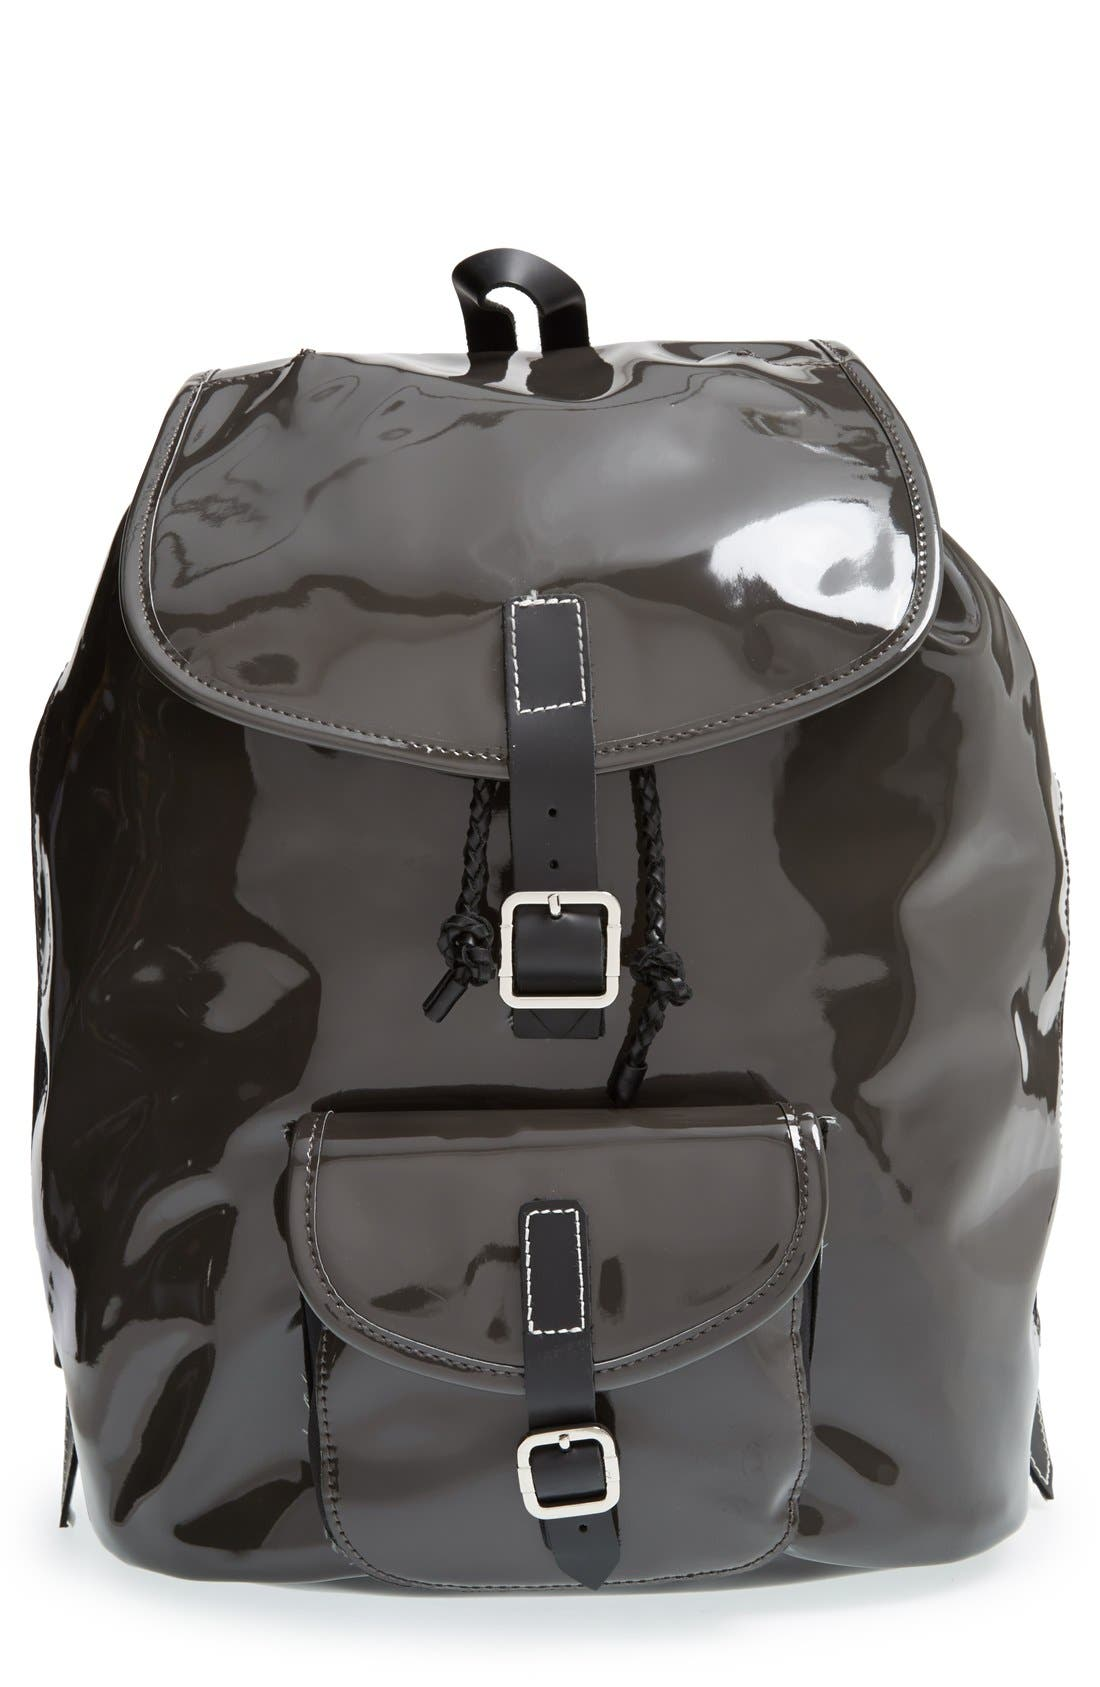 Alternate Image 1 Selected - Harper Ave 'Philip' Neoprene & Faux Patent Leather Backpack